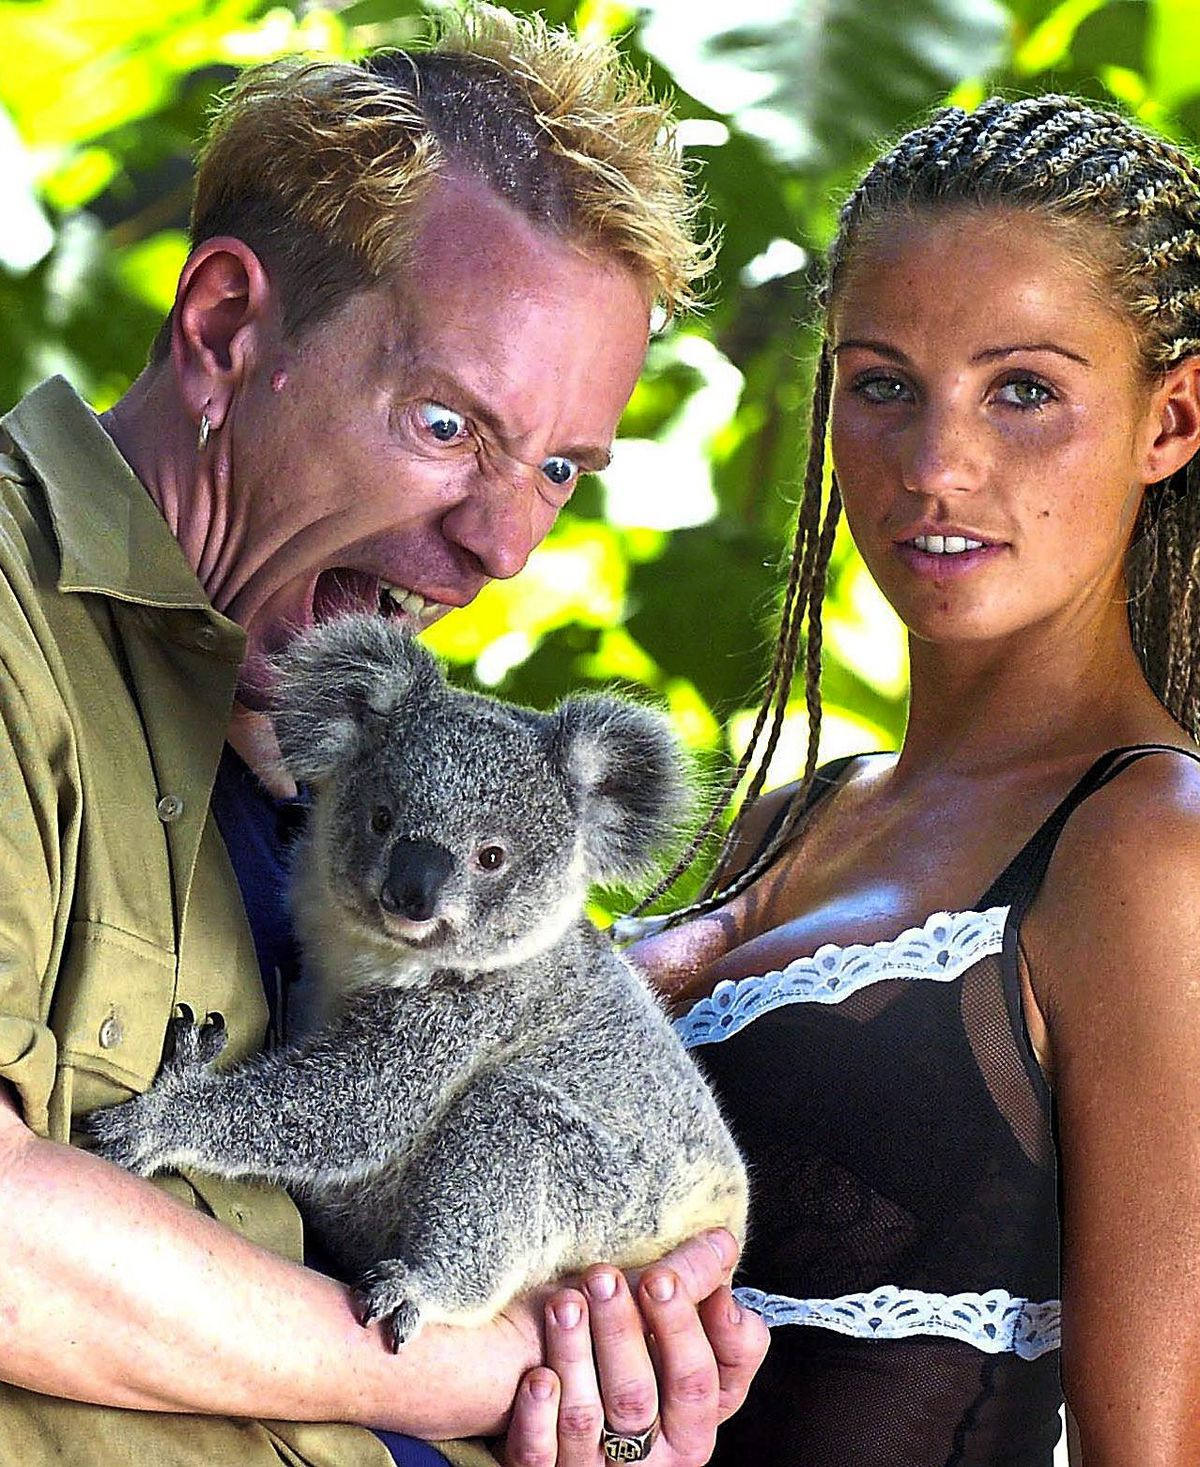 Johnny was a hit on ITV's I'm a Celebrity